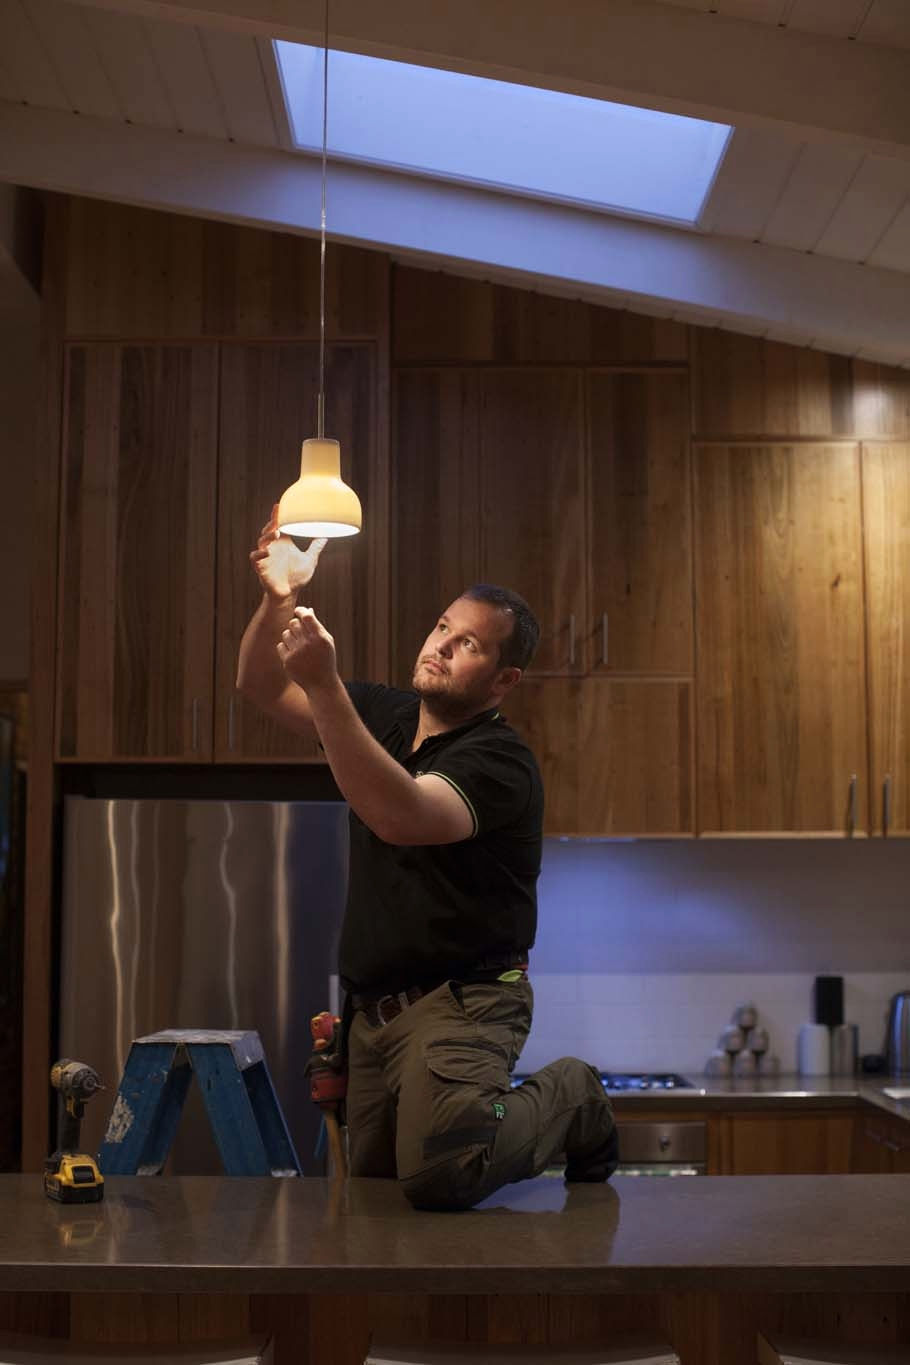 Man at work - electrician